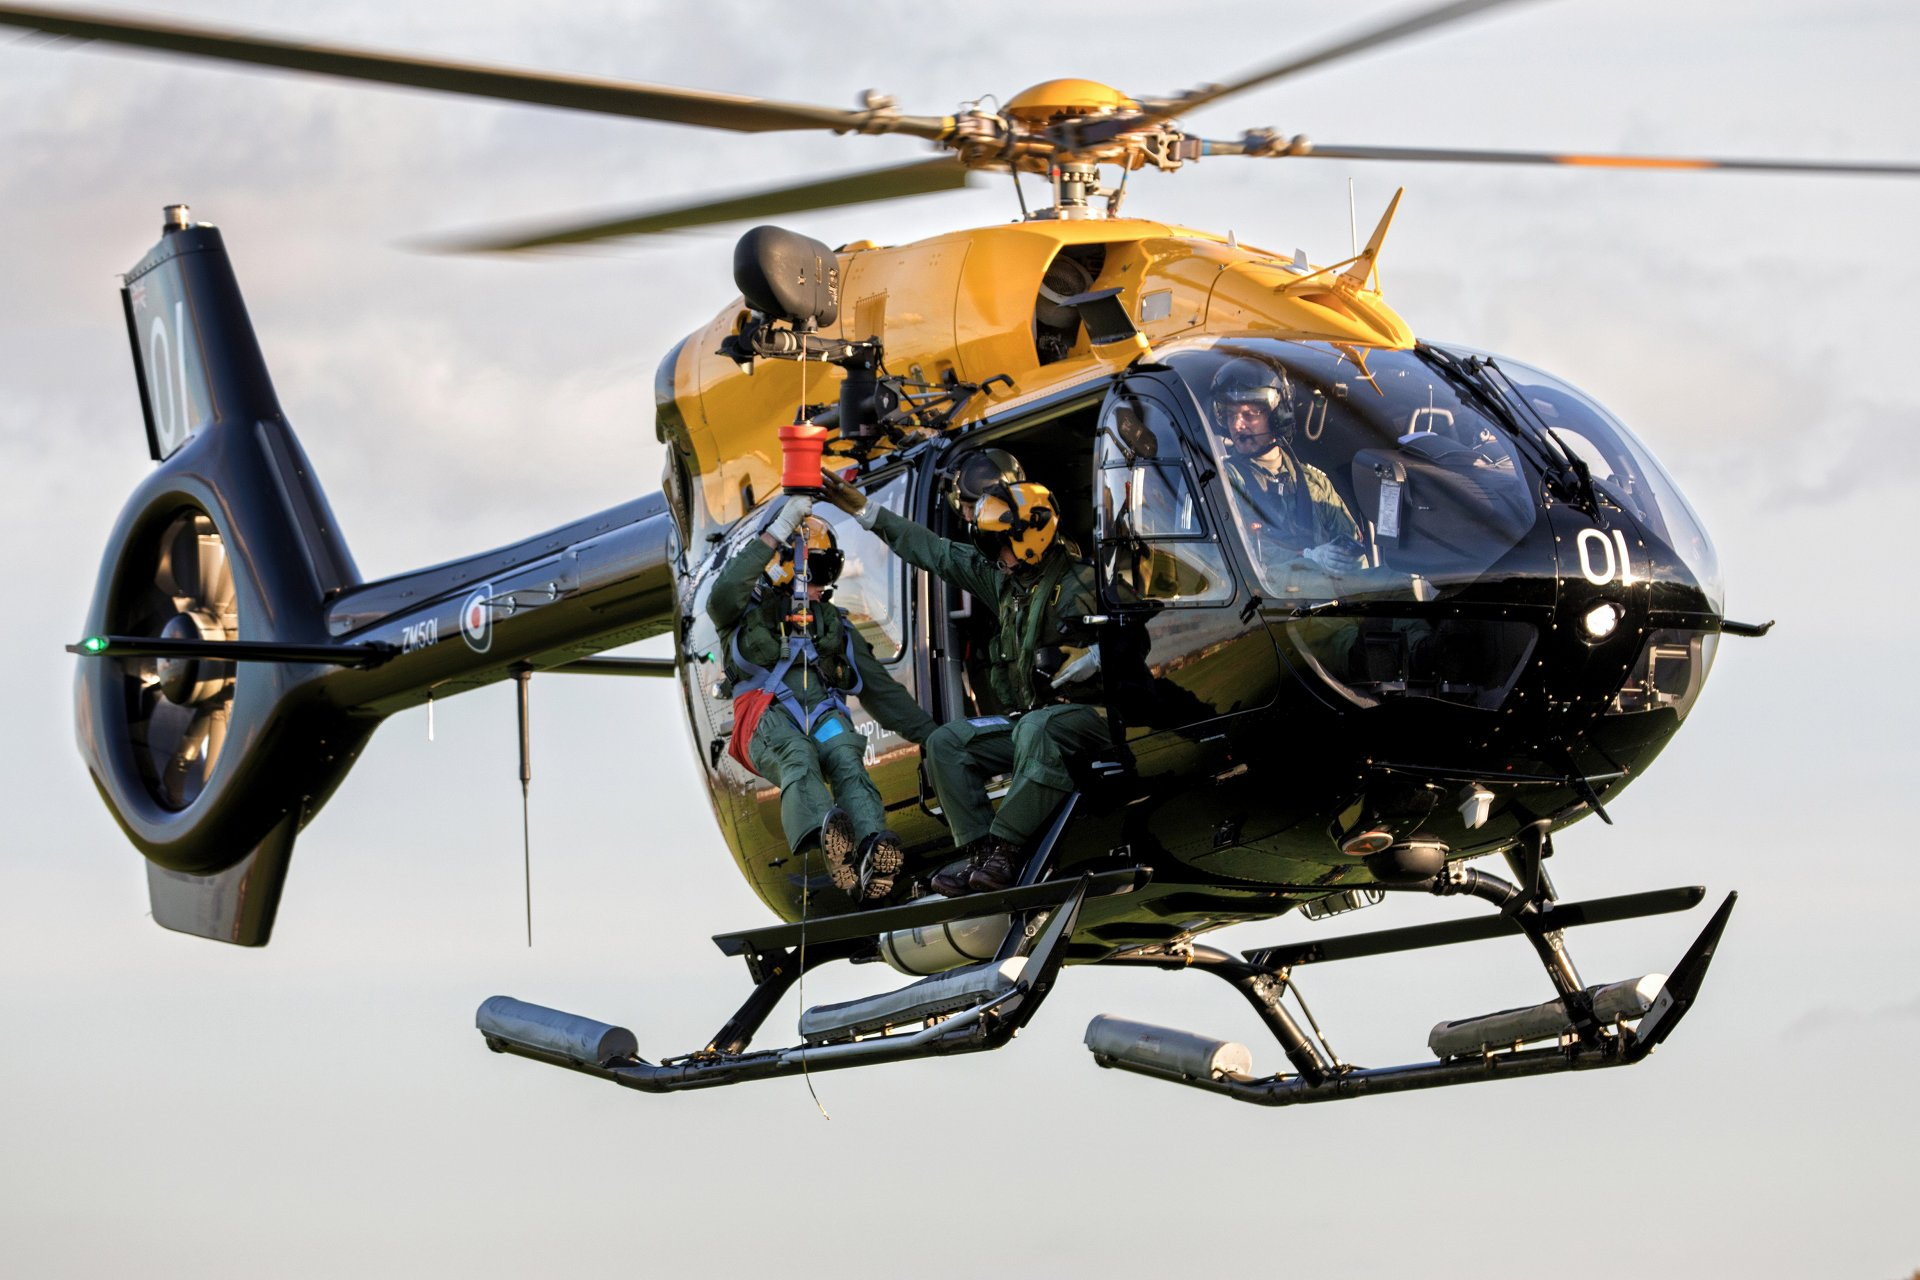 Airbus Helicopters in the UK is to provide four additional H145 helicopters as part of an expansion of the UK Military Flight Training System (UKMFTS).